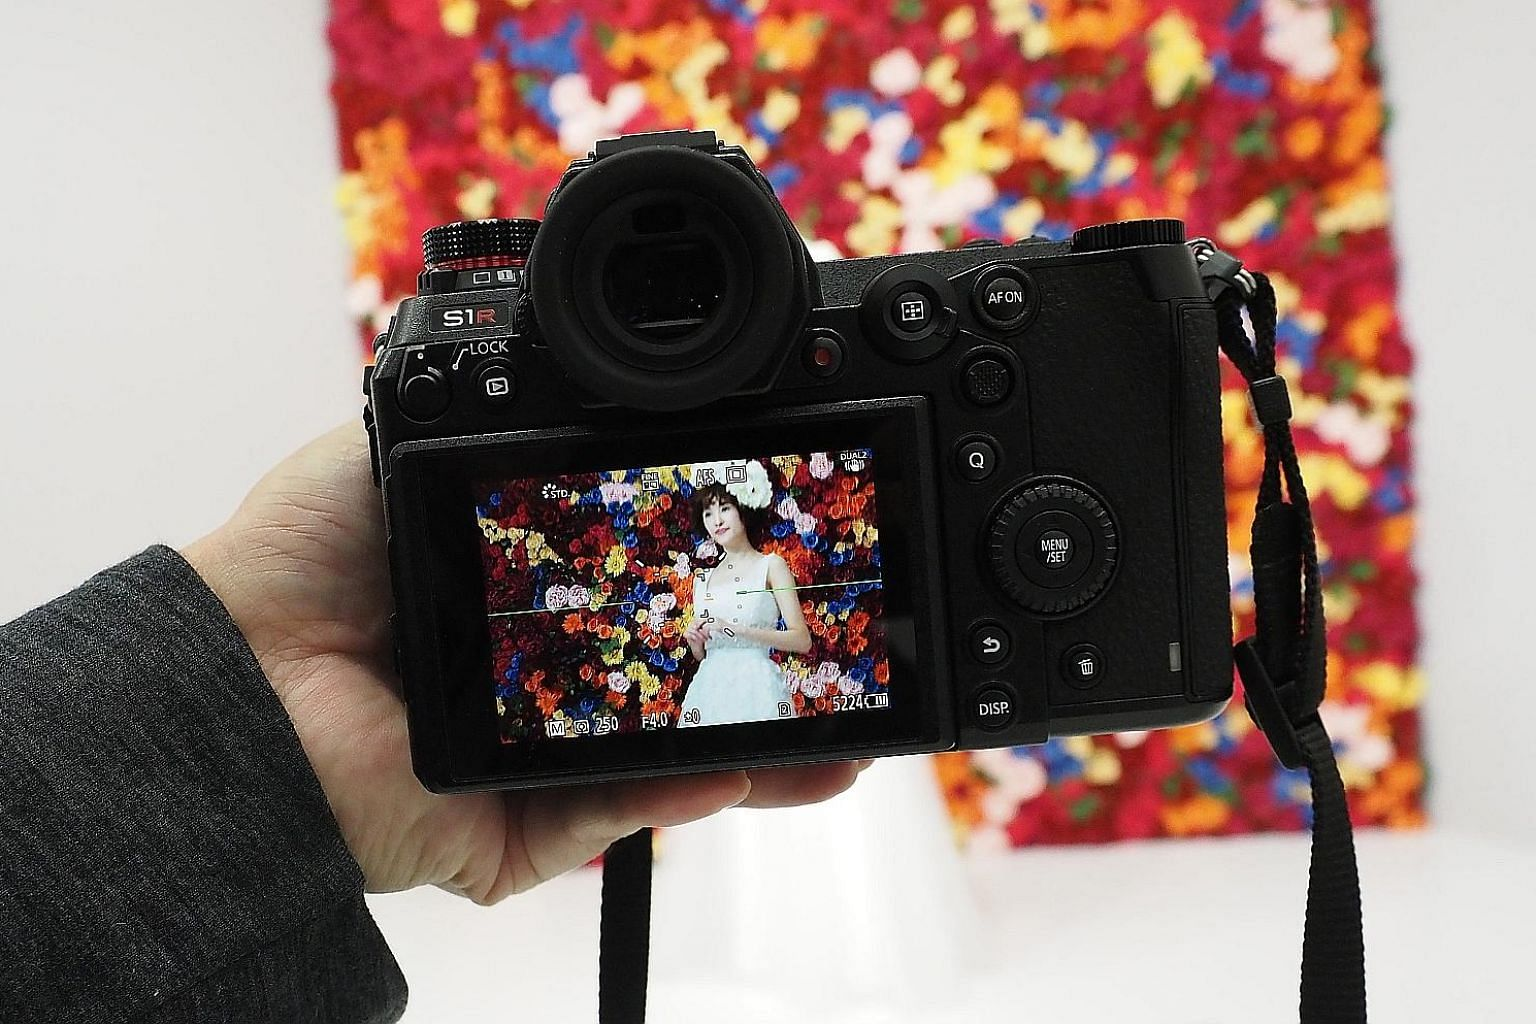 The 47-megapixel Panasonic Lumix S1R took sharp images with great details and nice colour reproduction during a hands-on session at CP+ in Japan.